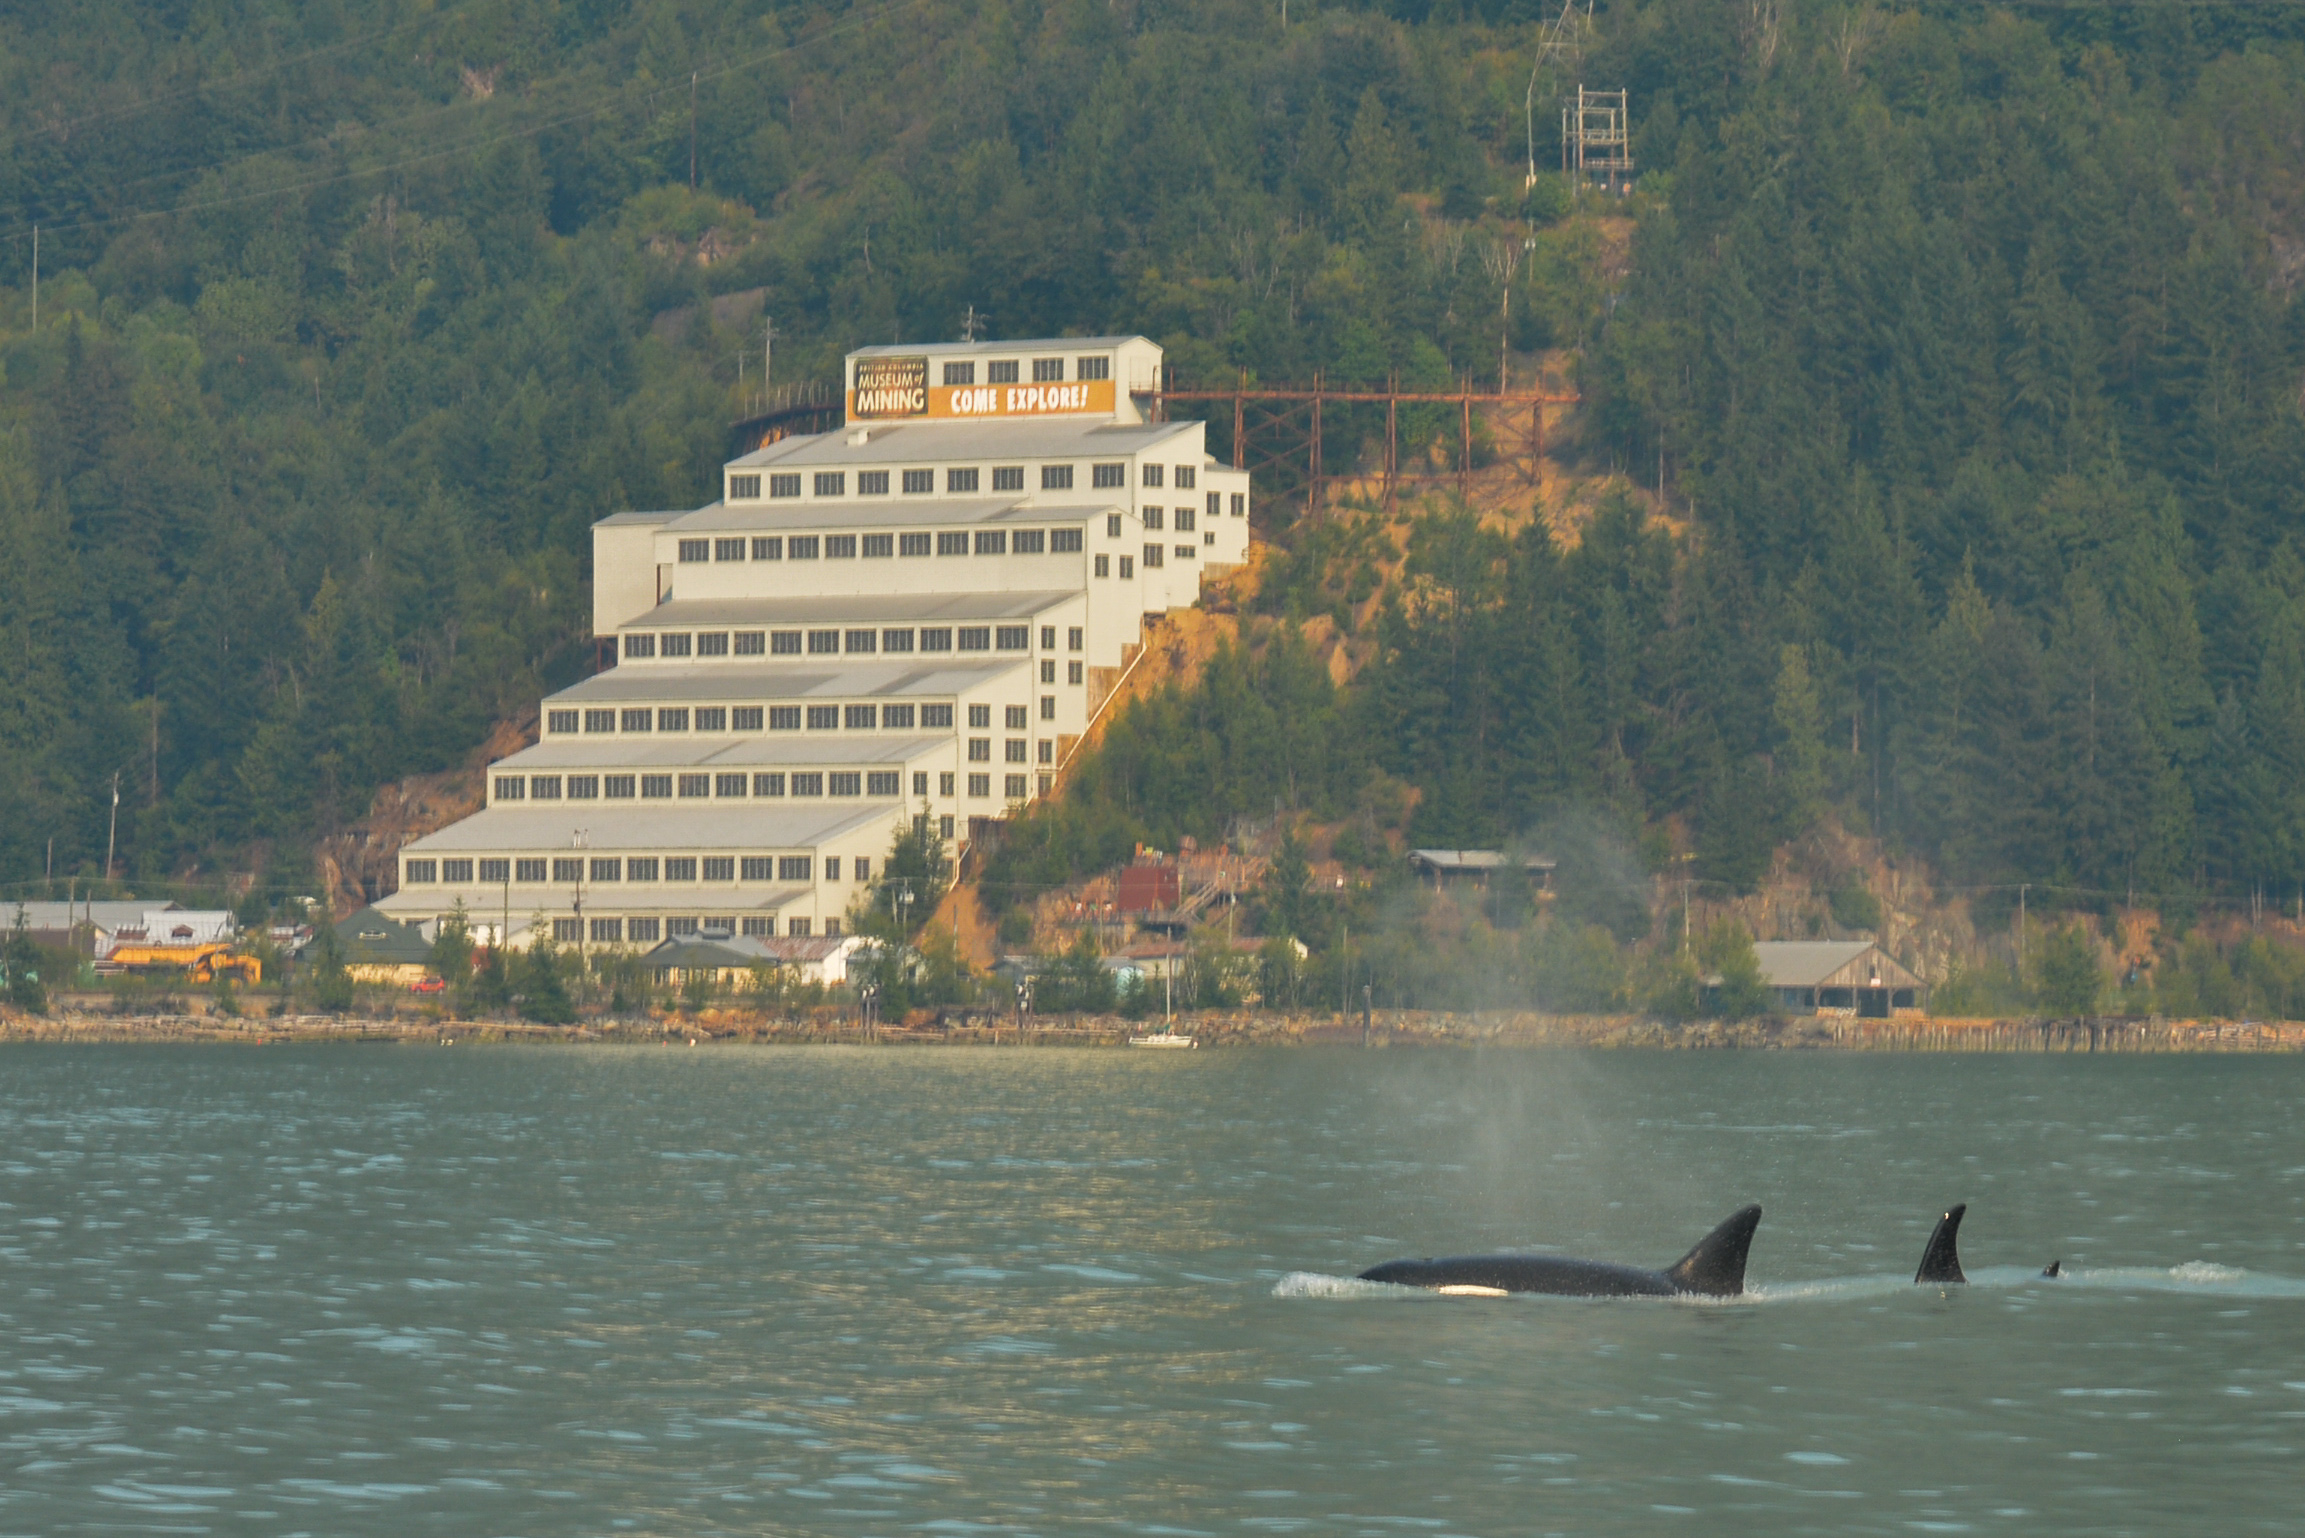 Orcas surfacing just in front of the Britannia Mine Museum. Photo by Jenna Keen.